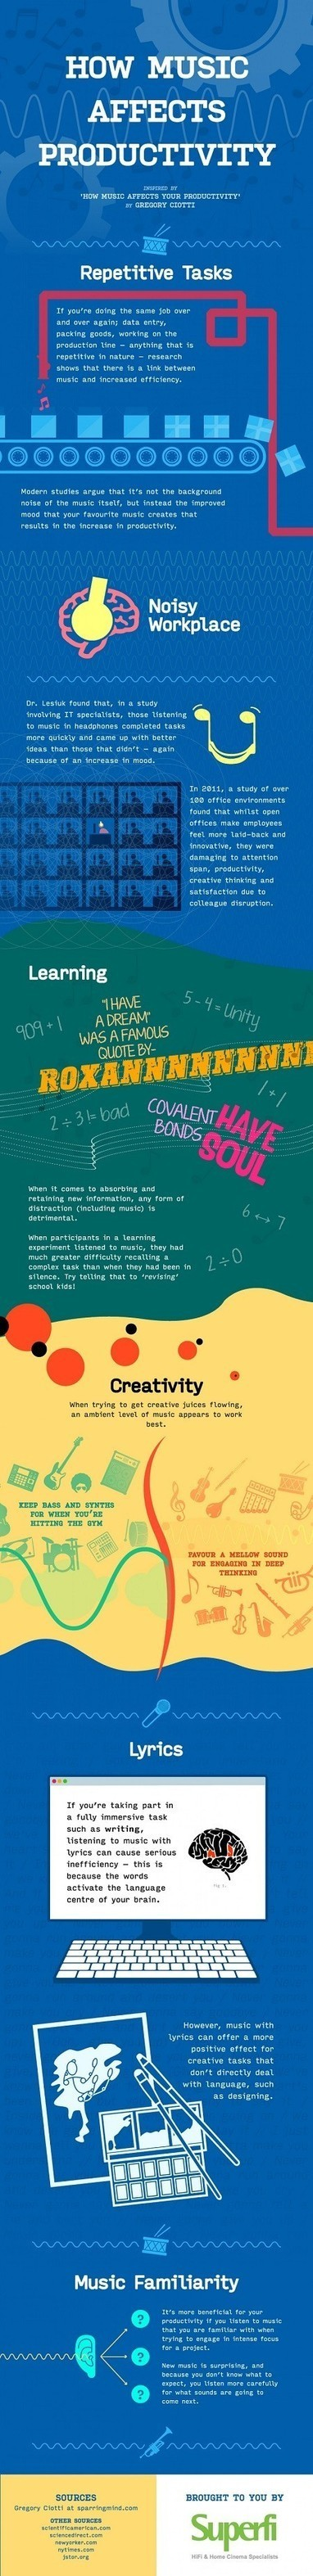 How Music Affects Productivity   Performance Project   Scoop.it